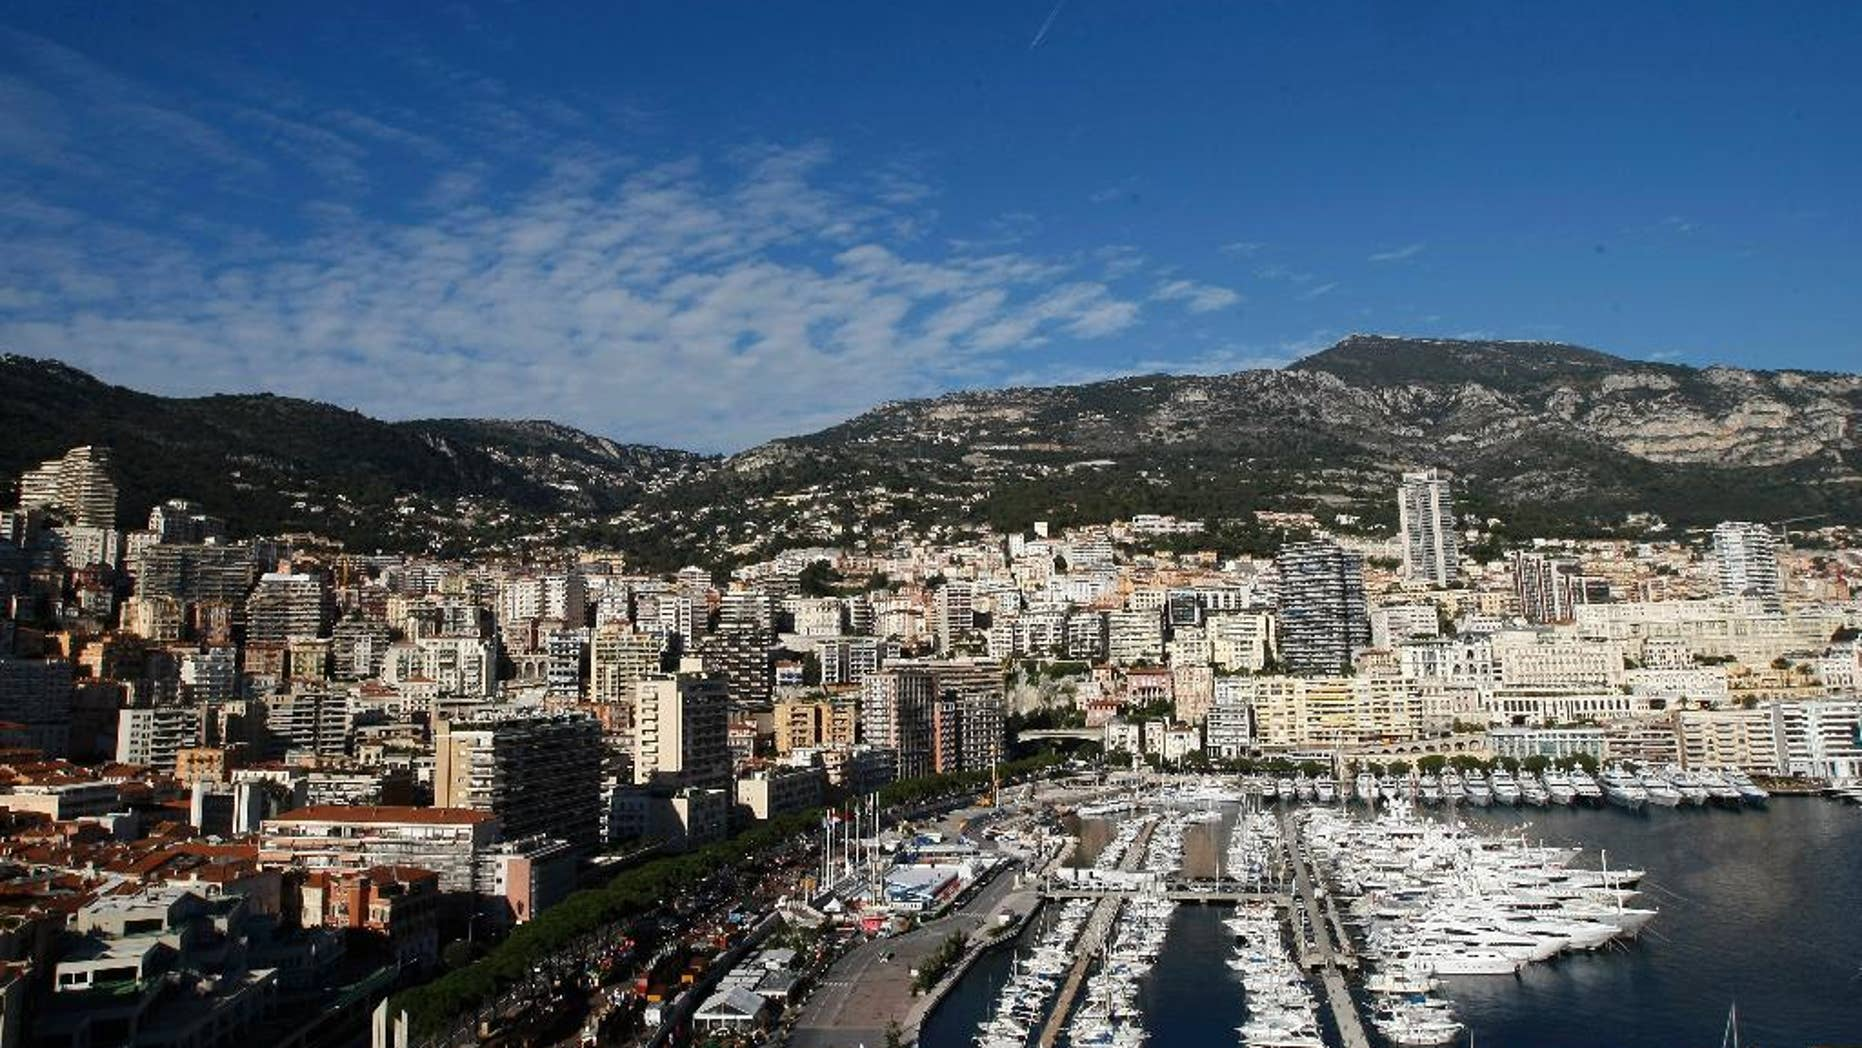 FILE - This Dec.12, 2014 file photo shows the Monaco principality and its yachts docked in the harbour.  Monaco's government says it's investigating how an alleged vast oil corruption scandal involving a Monaco-based company long went unnoticed, even though the principality has opened up its financial sector and cracked down on tax dodging. (AP Photo/Claude Paris, File)